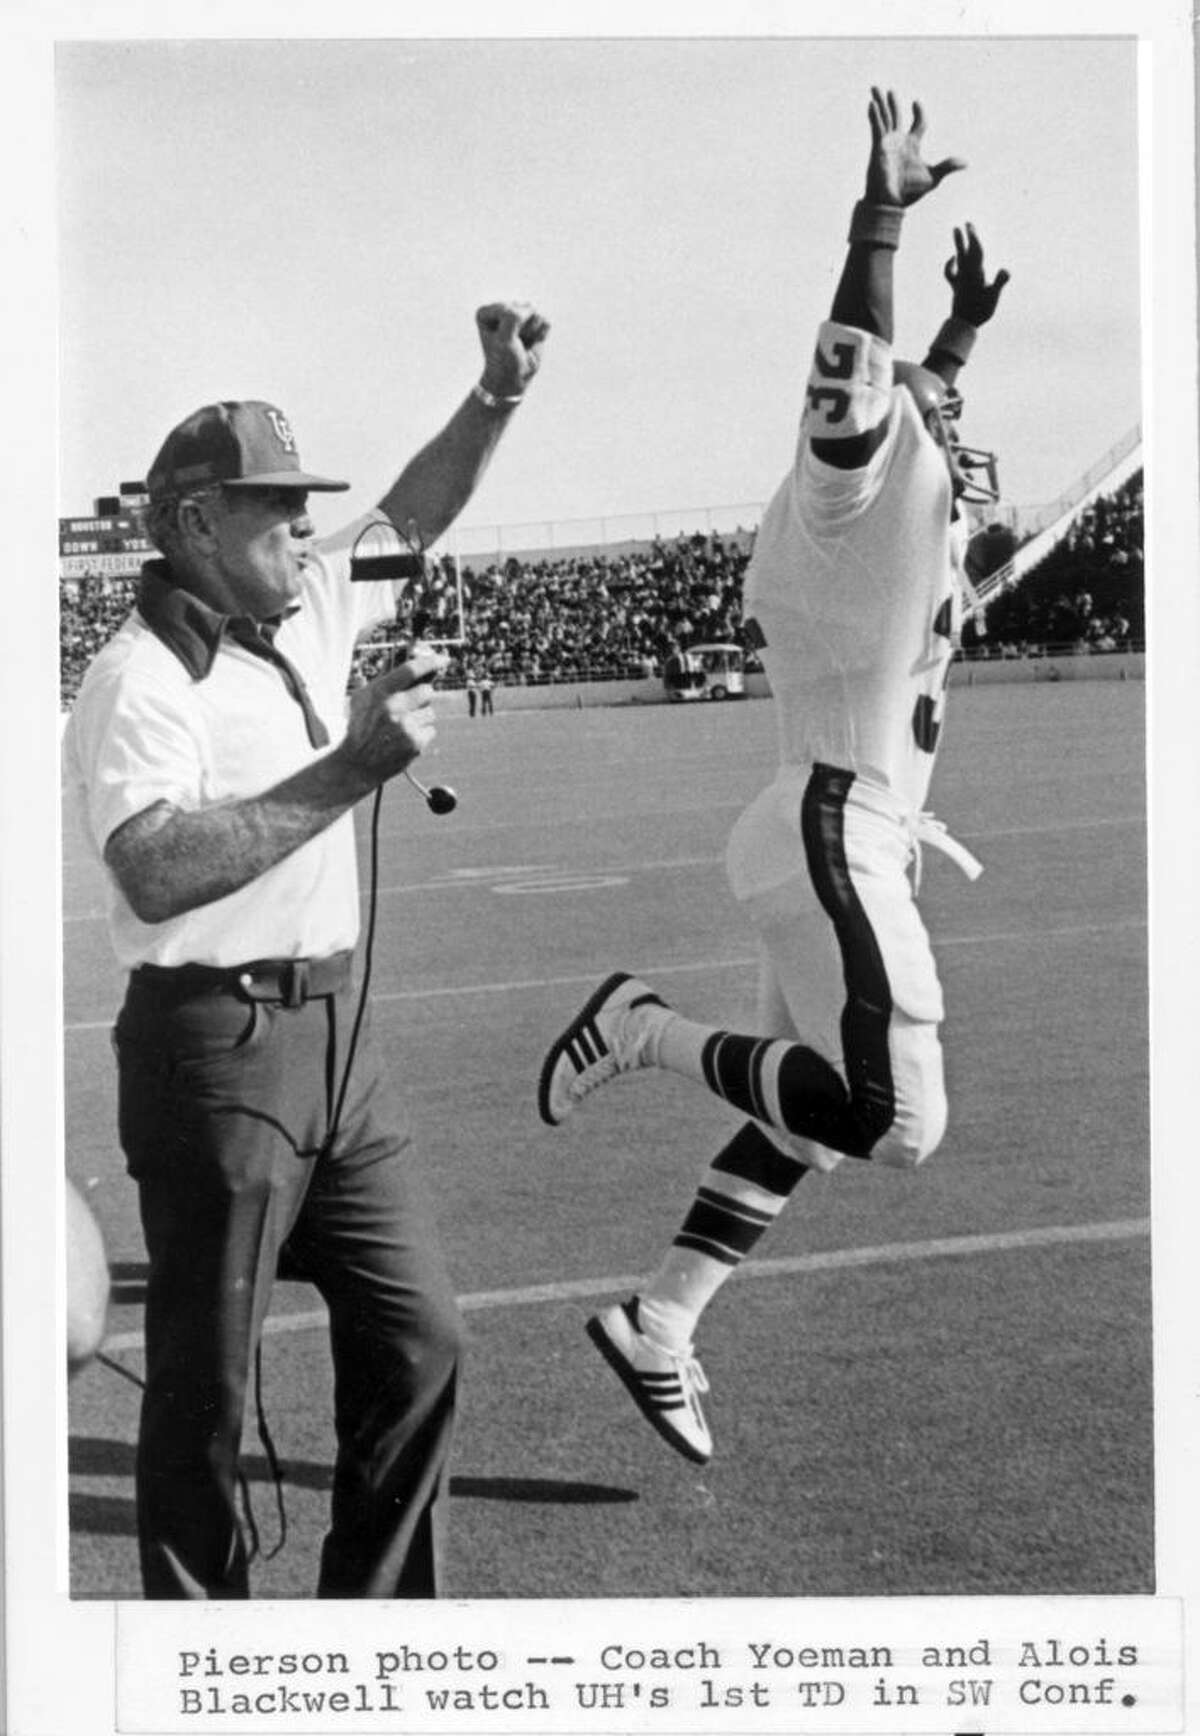 Bill Yeoman and Alois Blackwell celebrate UH's first touchdown in the Southwest Conference. The score was made with a 4-yard run by quarterback Danny Davis against the Baylor Bears in Waco in 1976.